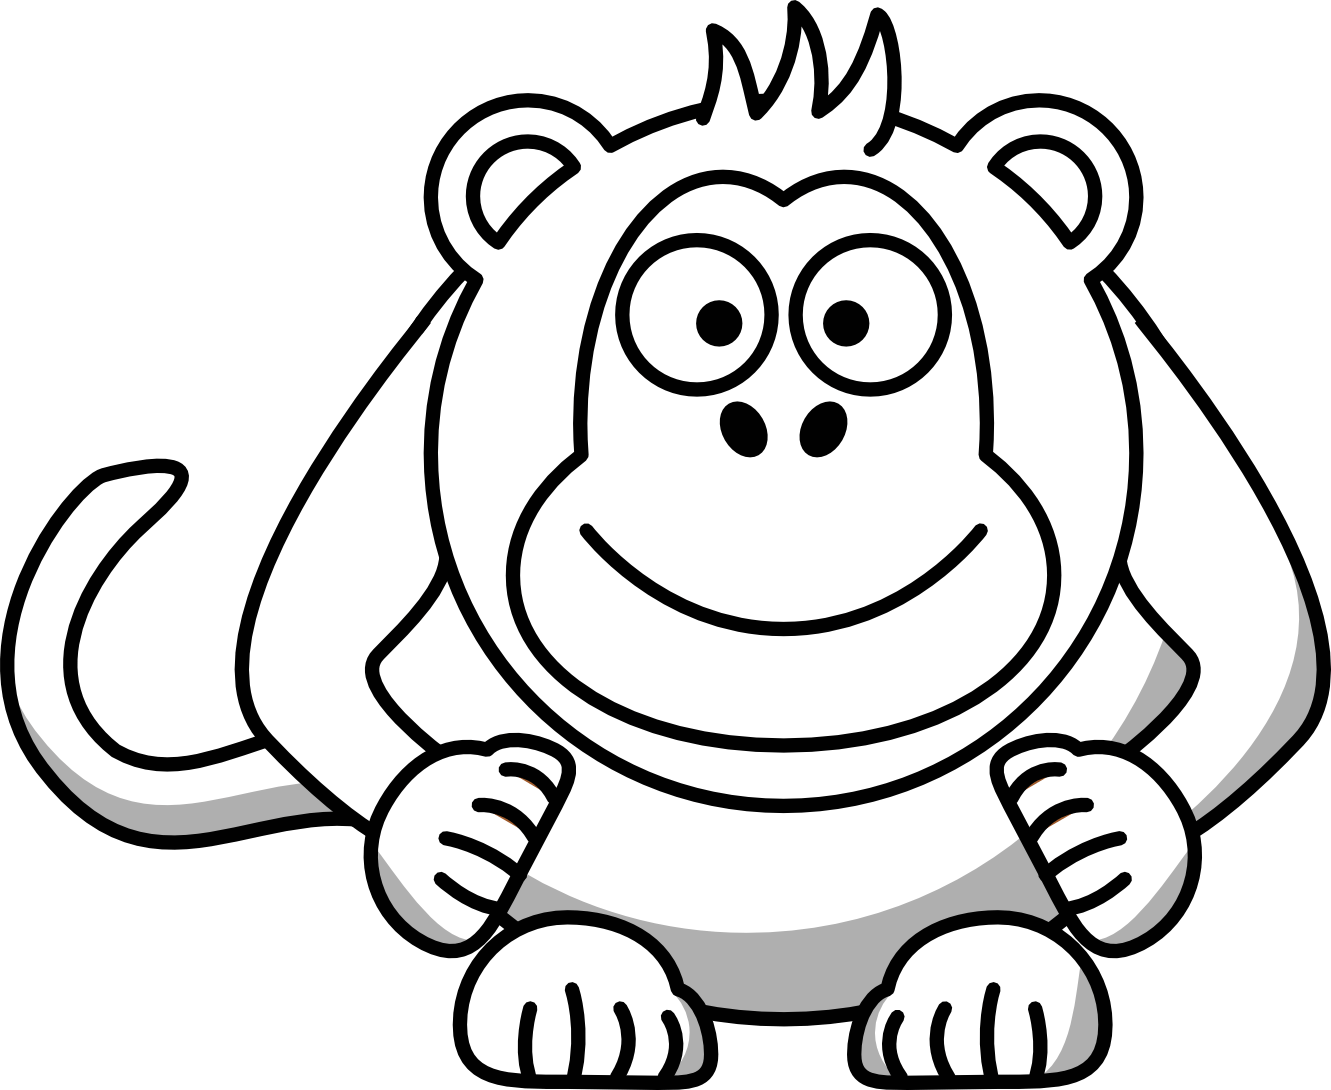 Monkey Clip Art Black And White Clipart Panda